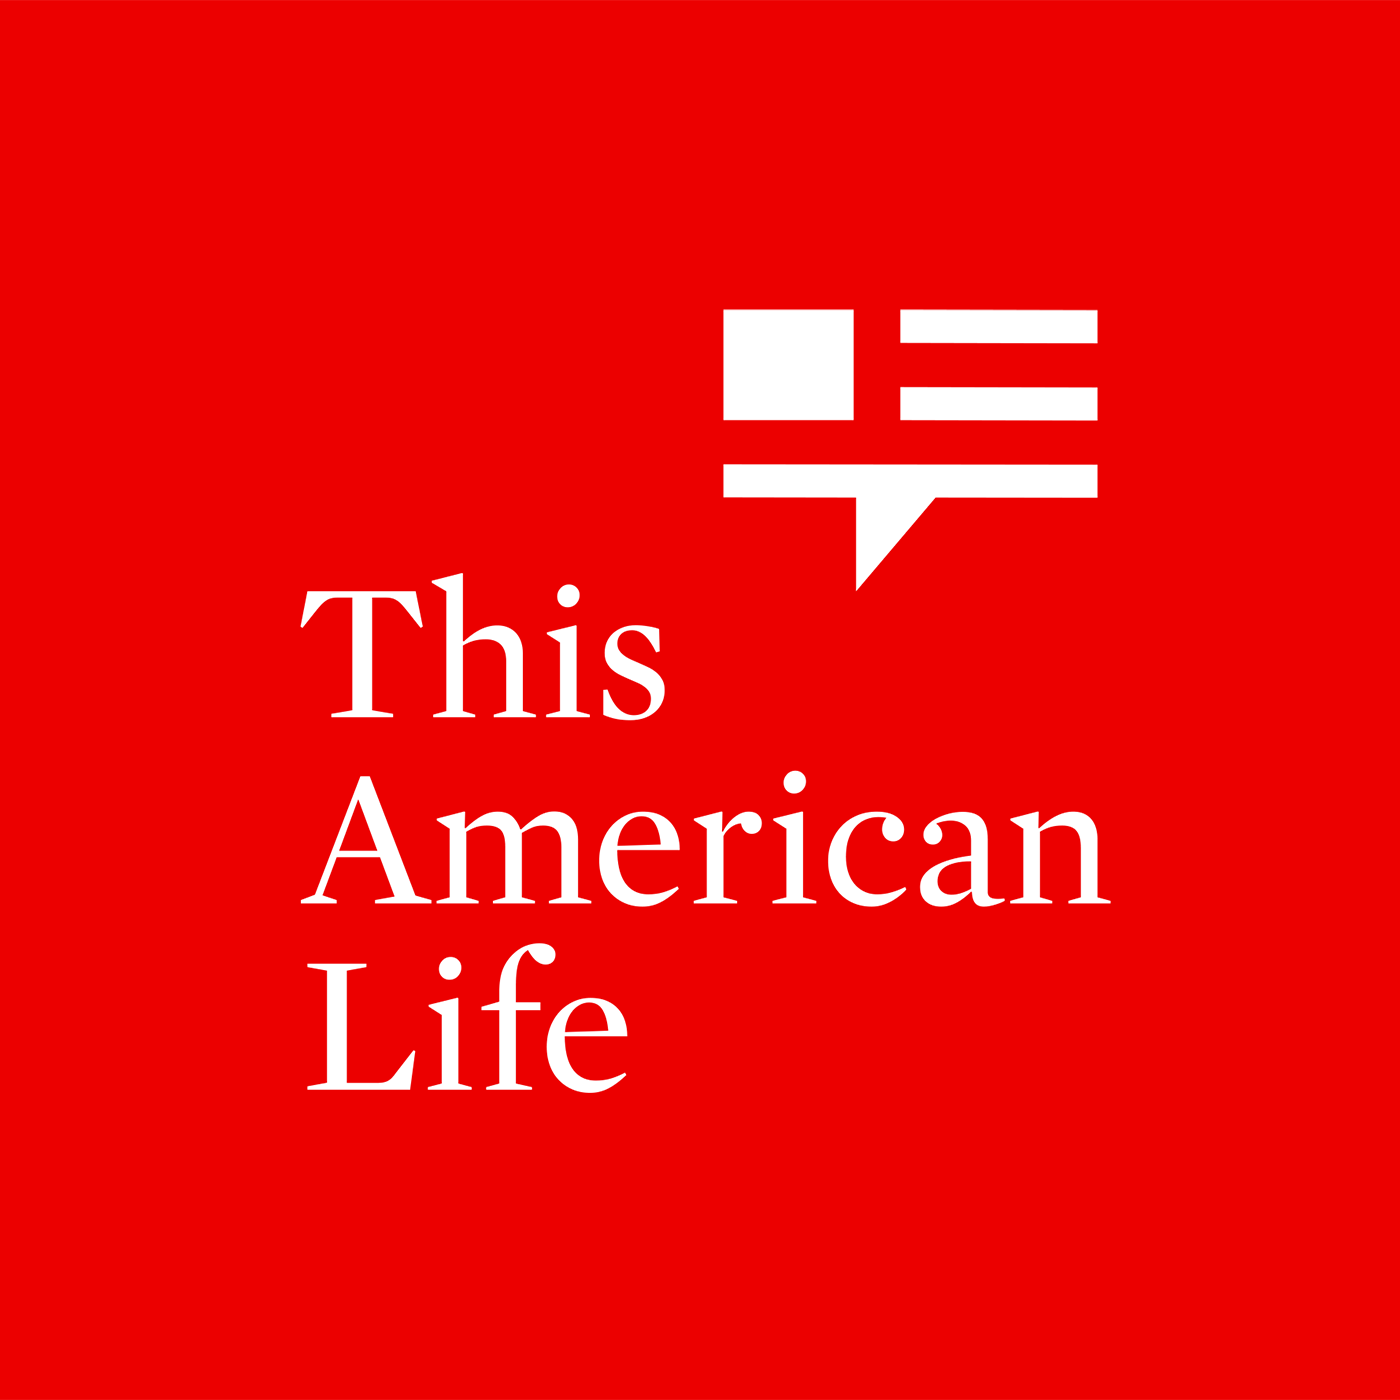 3. This American Life